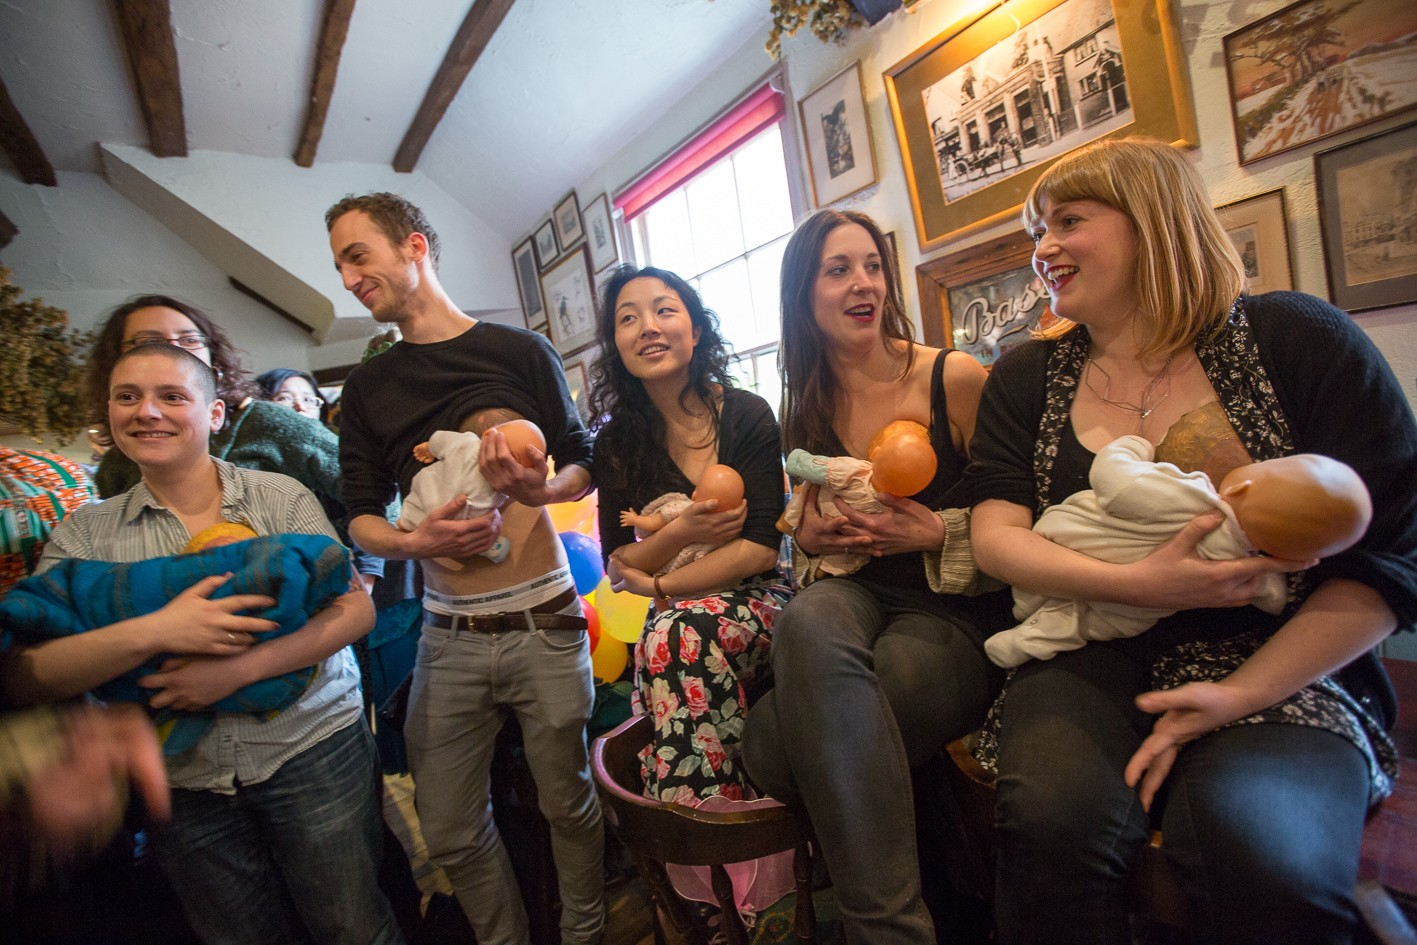 fake breast feeding in public, but not in a corner as Farage suggests